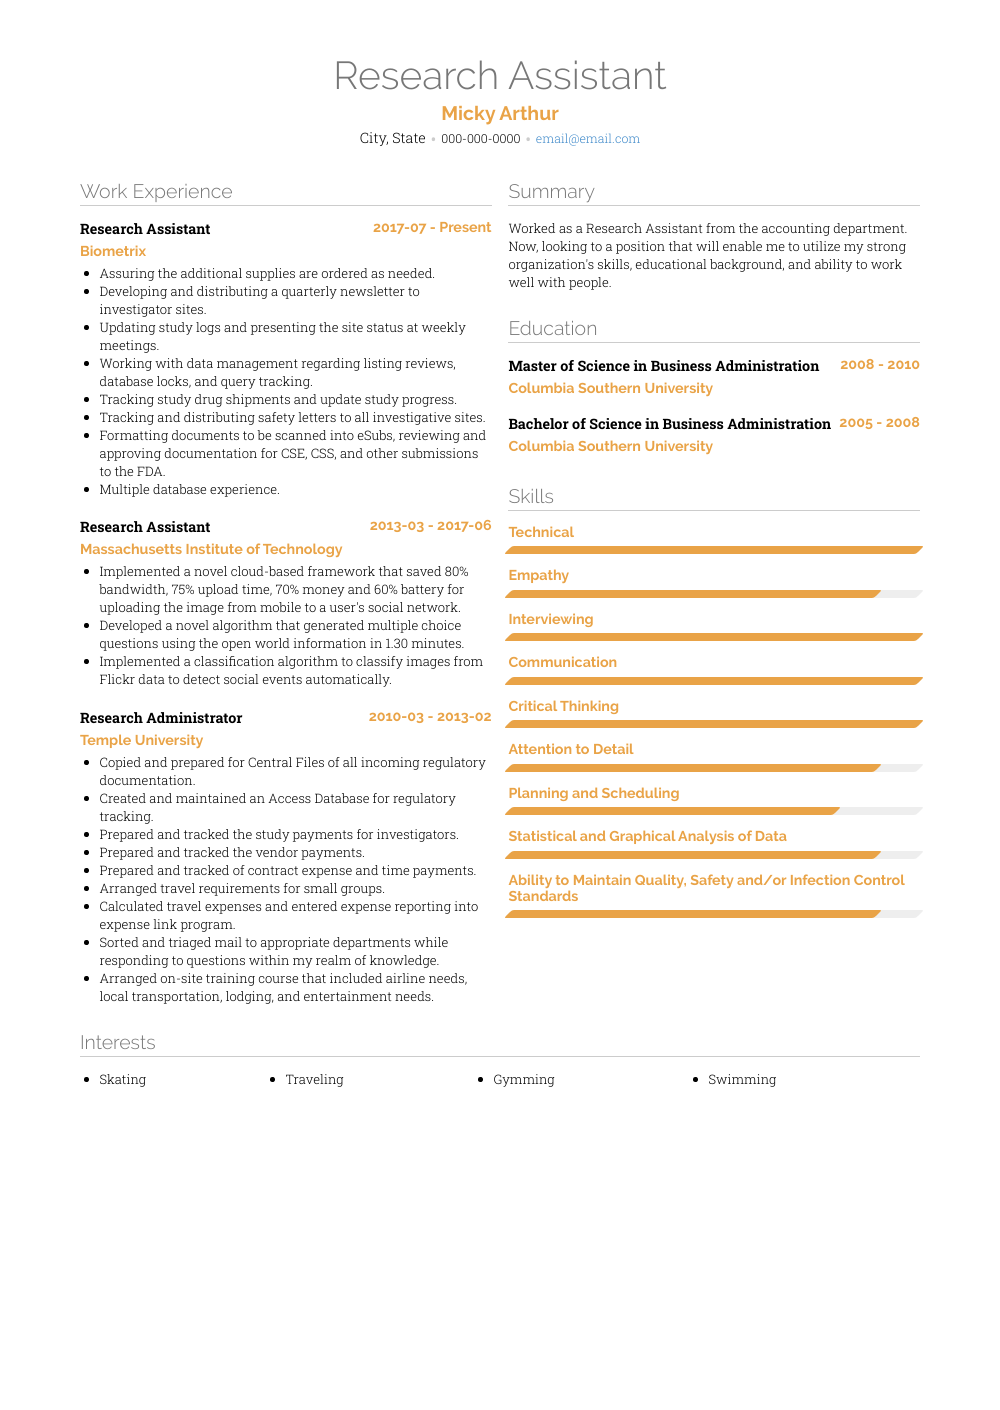 Research Assistant Resume Samples And Templates Visualcv